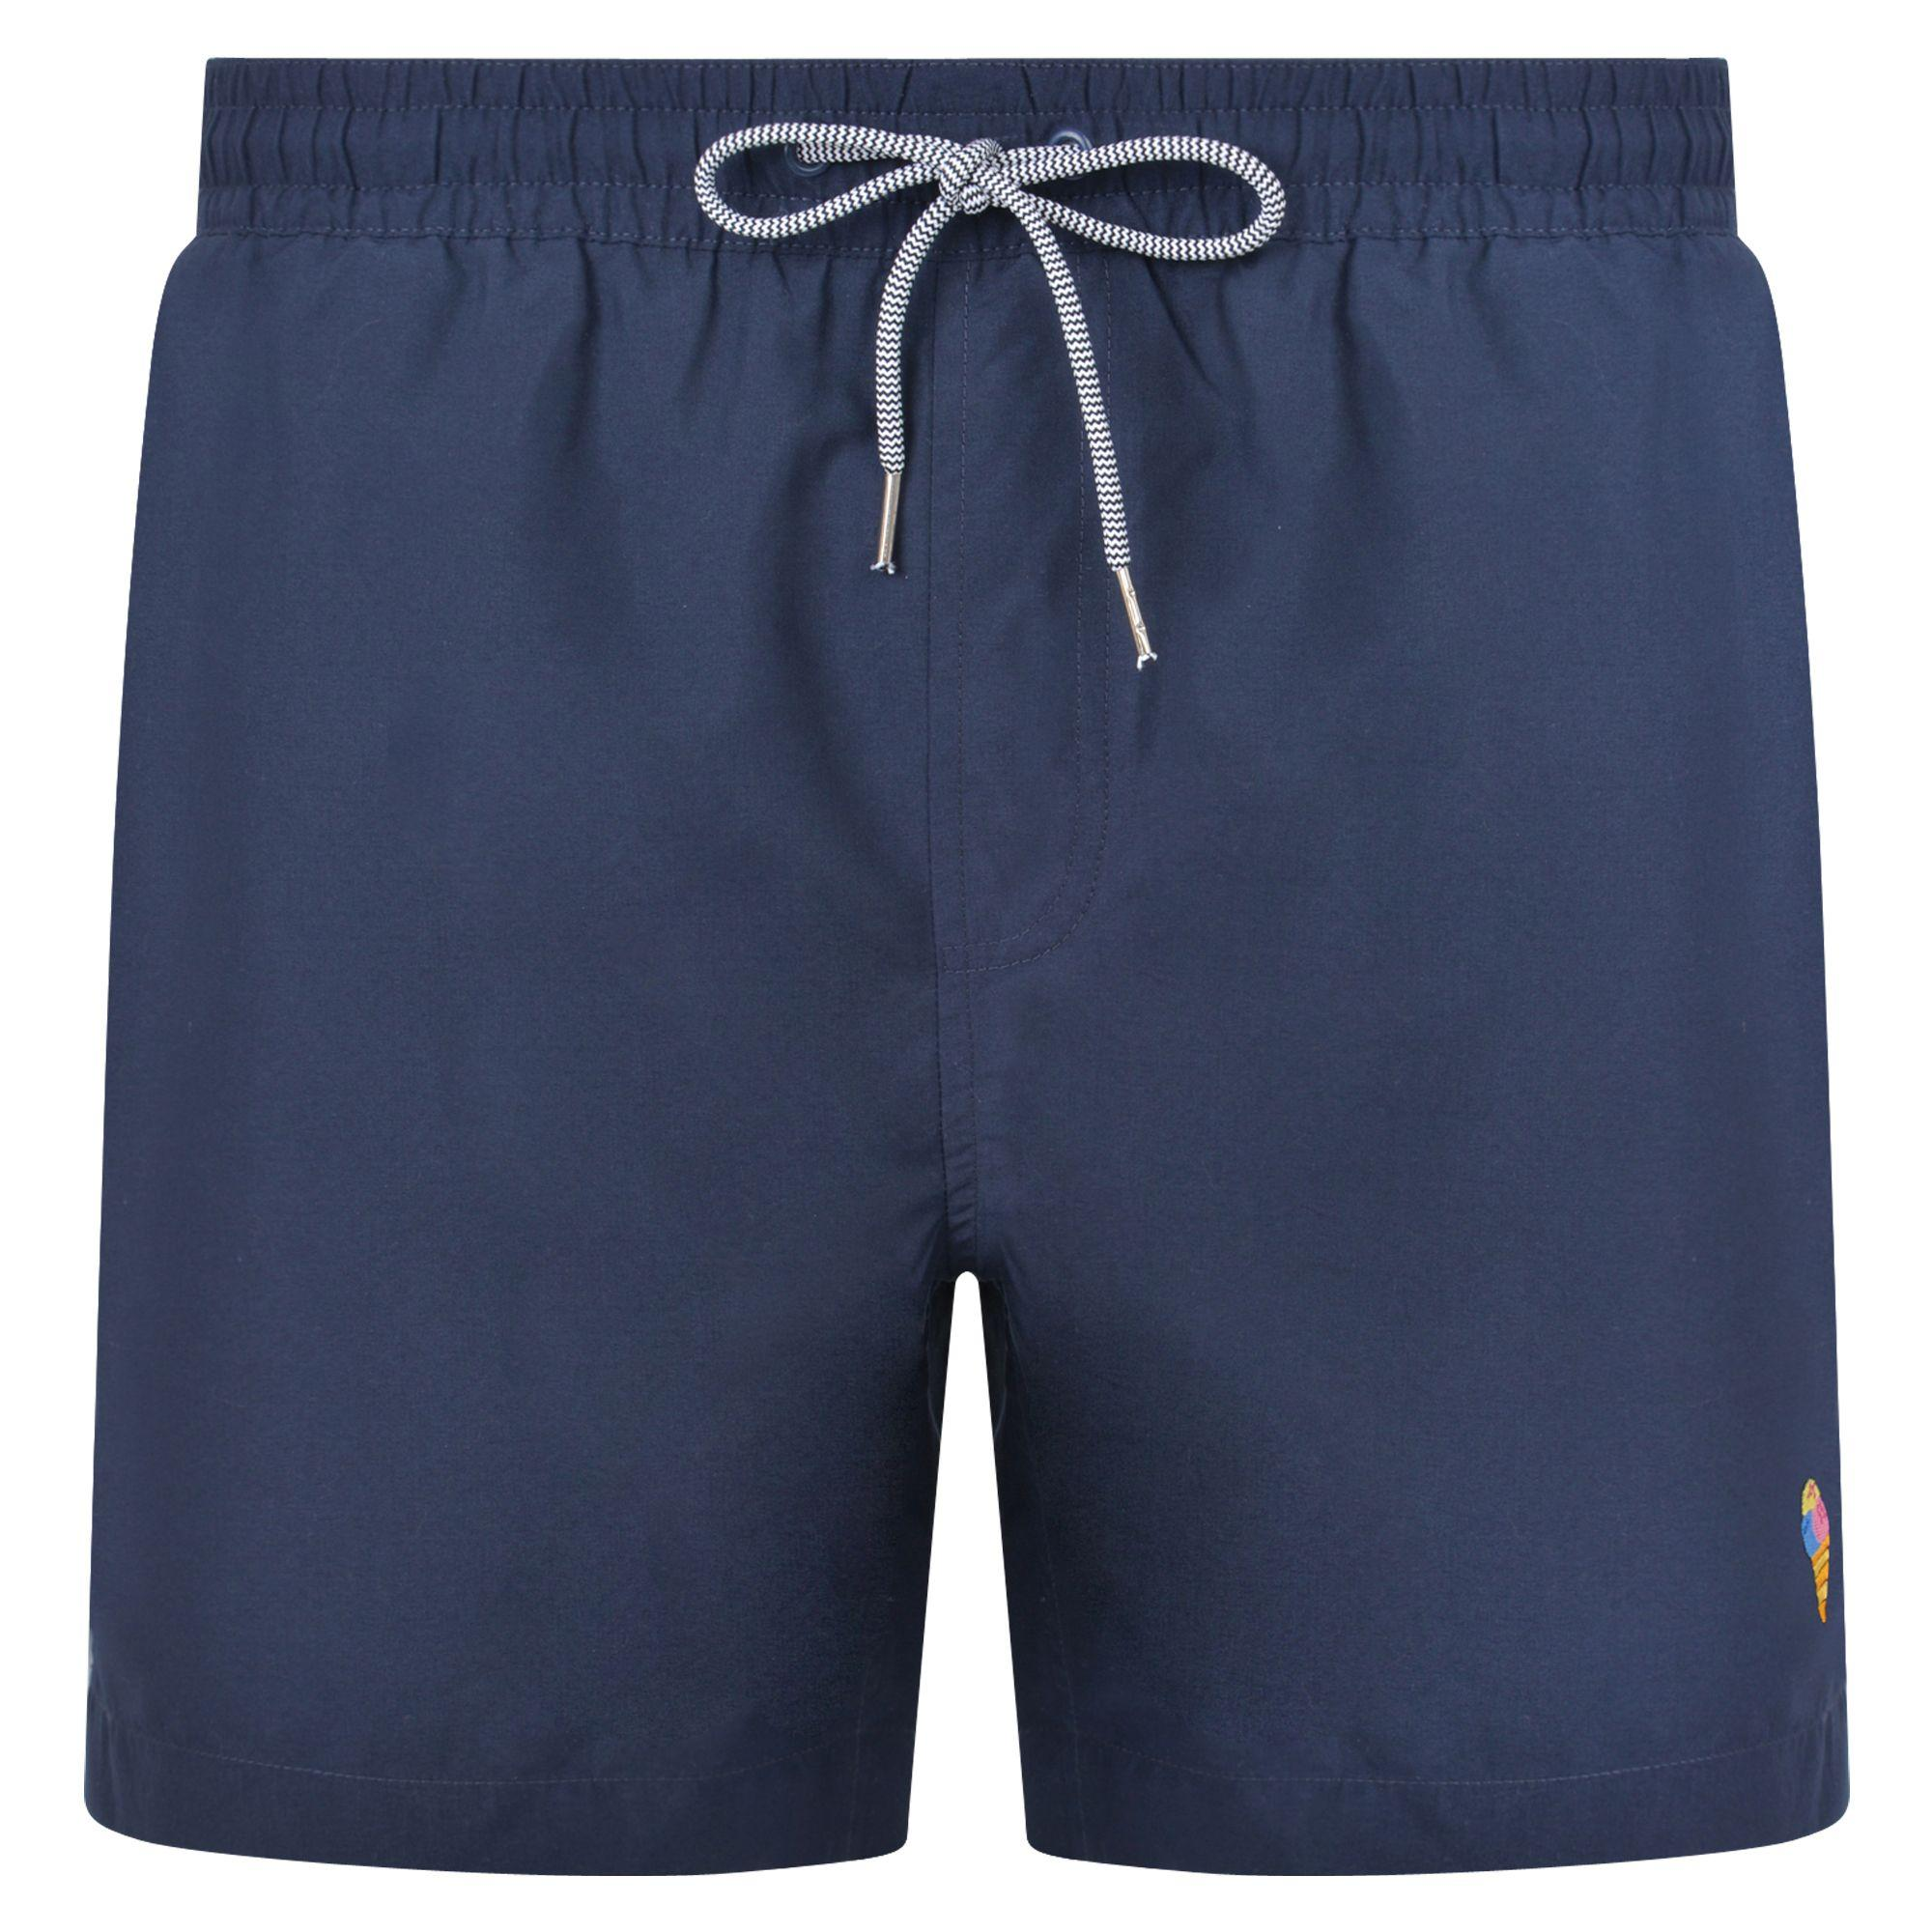 6dd55bc359 Threadbare - Blue 2 Pack Red And Navy 'barwhit' Swim Shorts for Men -. View  fullscreen